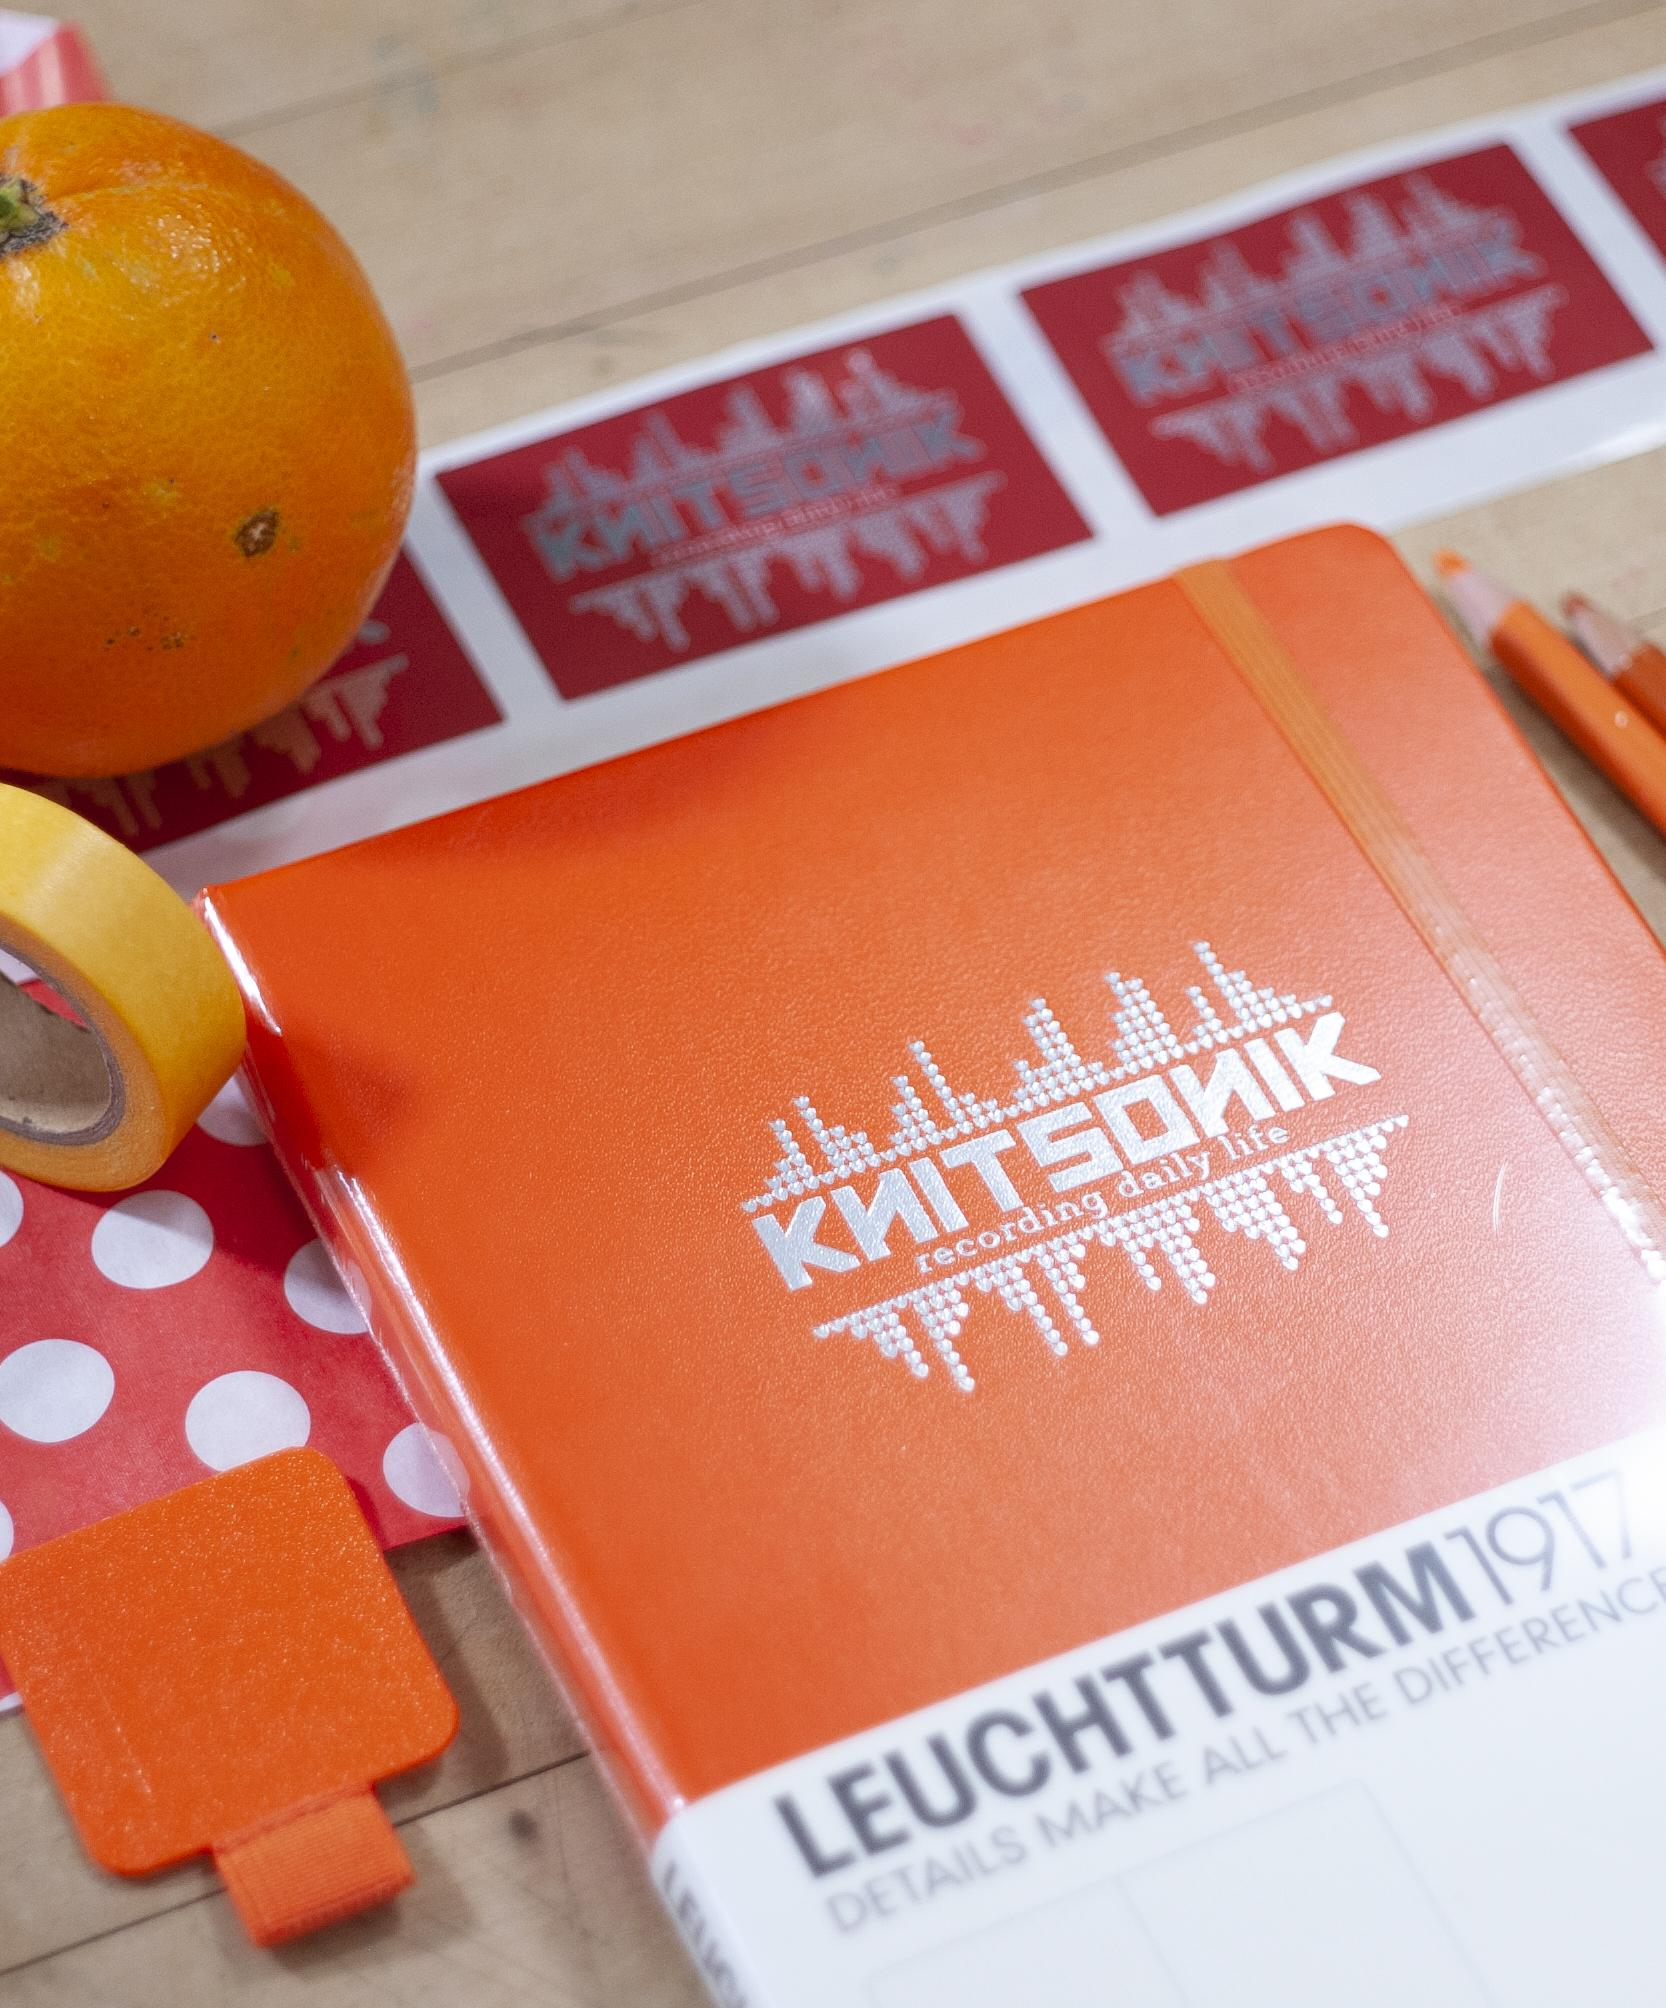 Orange Leuchtturm1917 pictured with orange items (including actual orange)